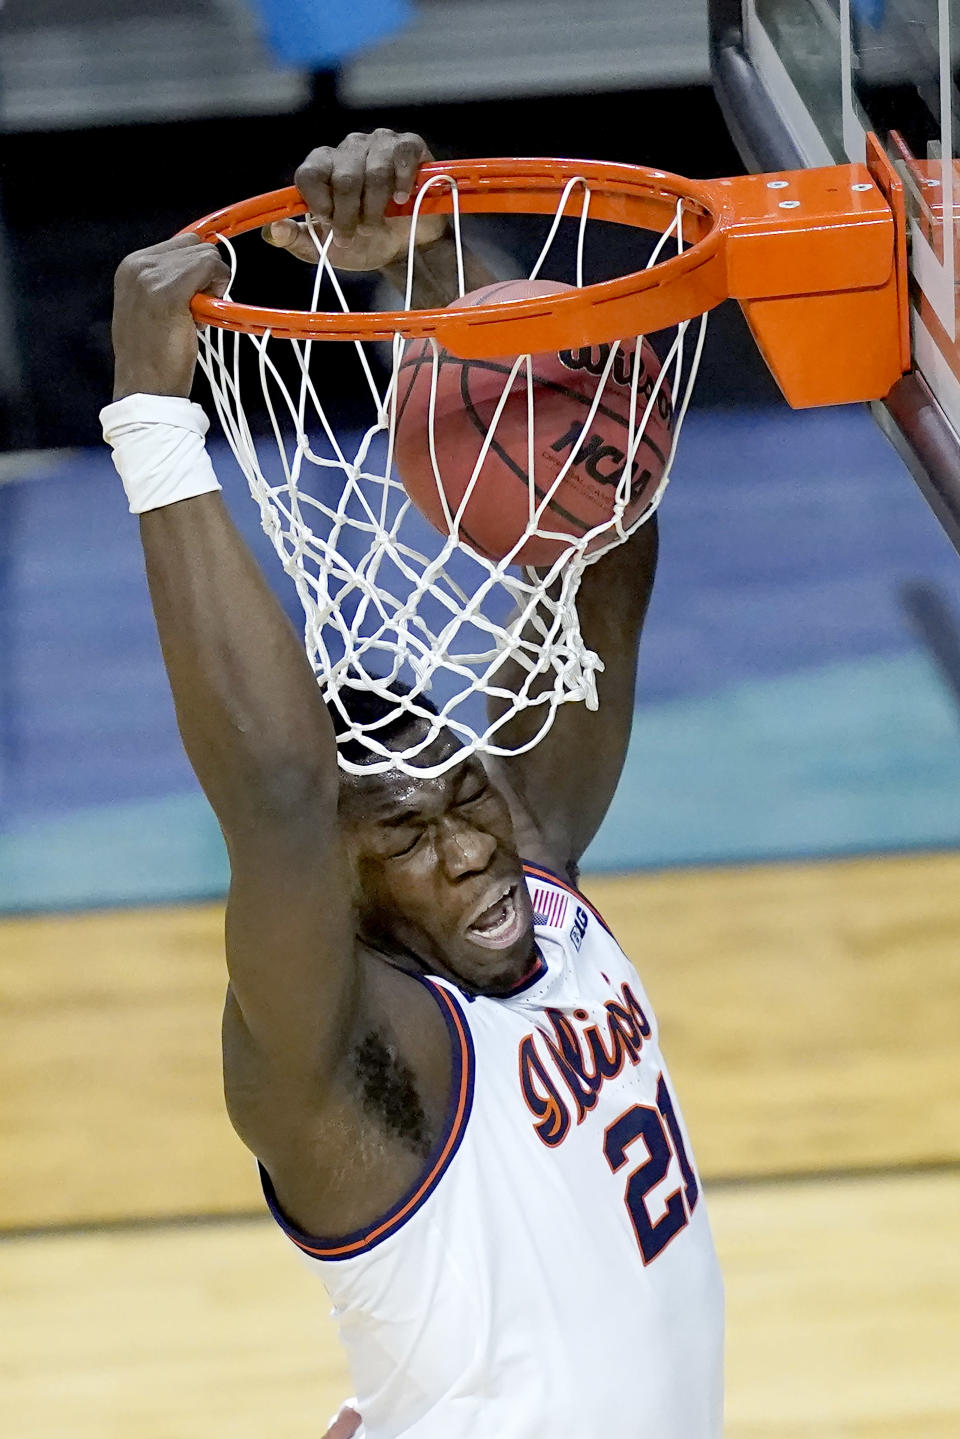 Illinois center Kofi Cockburn dunks the ball during the first half of a first round NCAA college basketball tournament game against Drexel Friday, March 19, 2021, at the Indiana Farmers Coliseum in Indianapolis .(AP Photo/Charles Rex Arbogast)